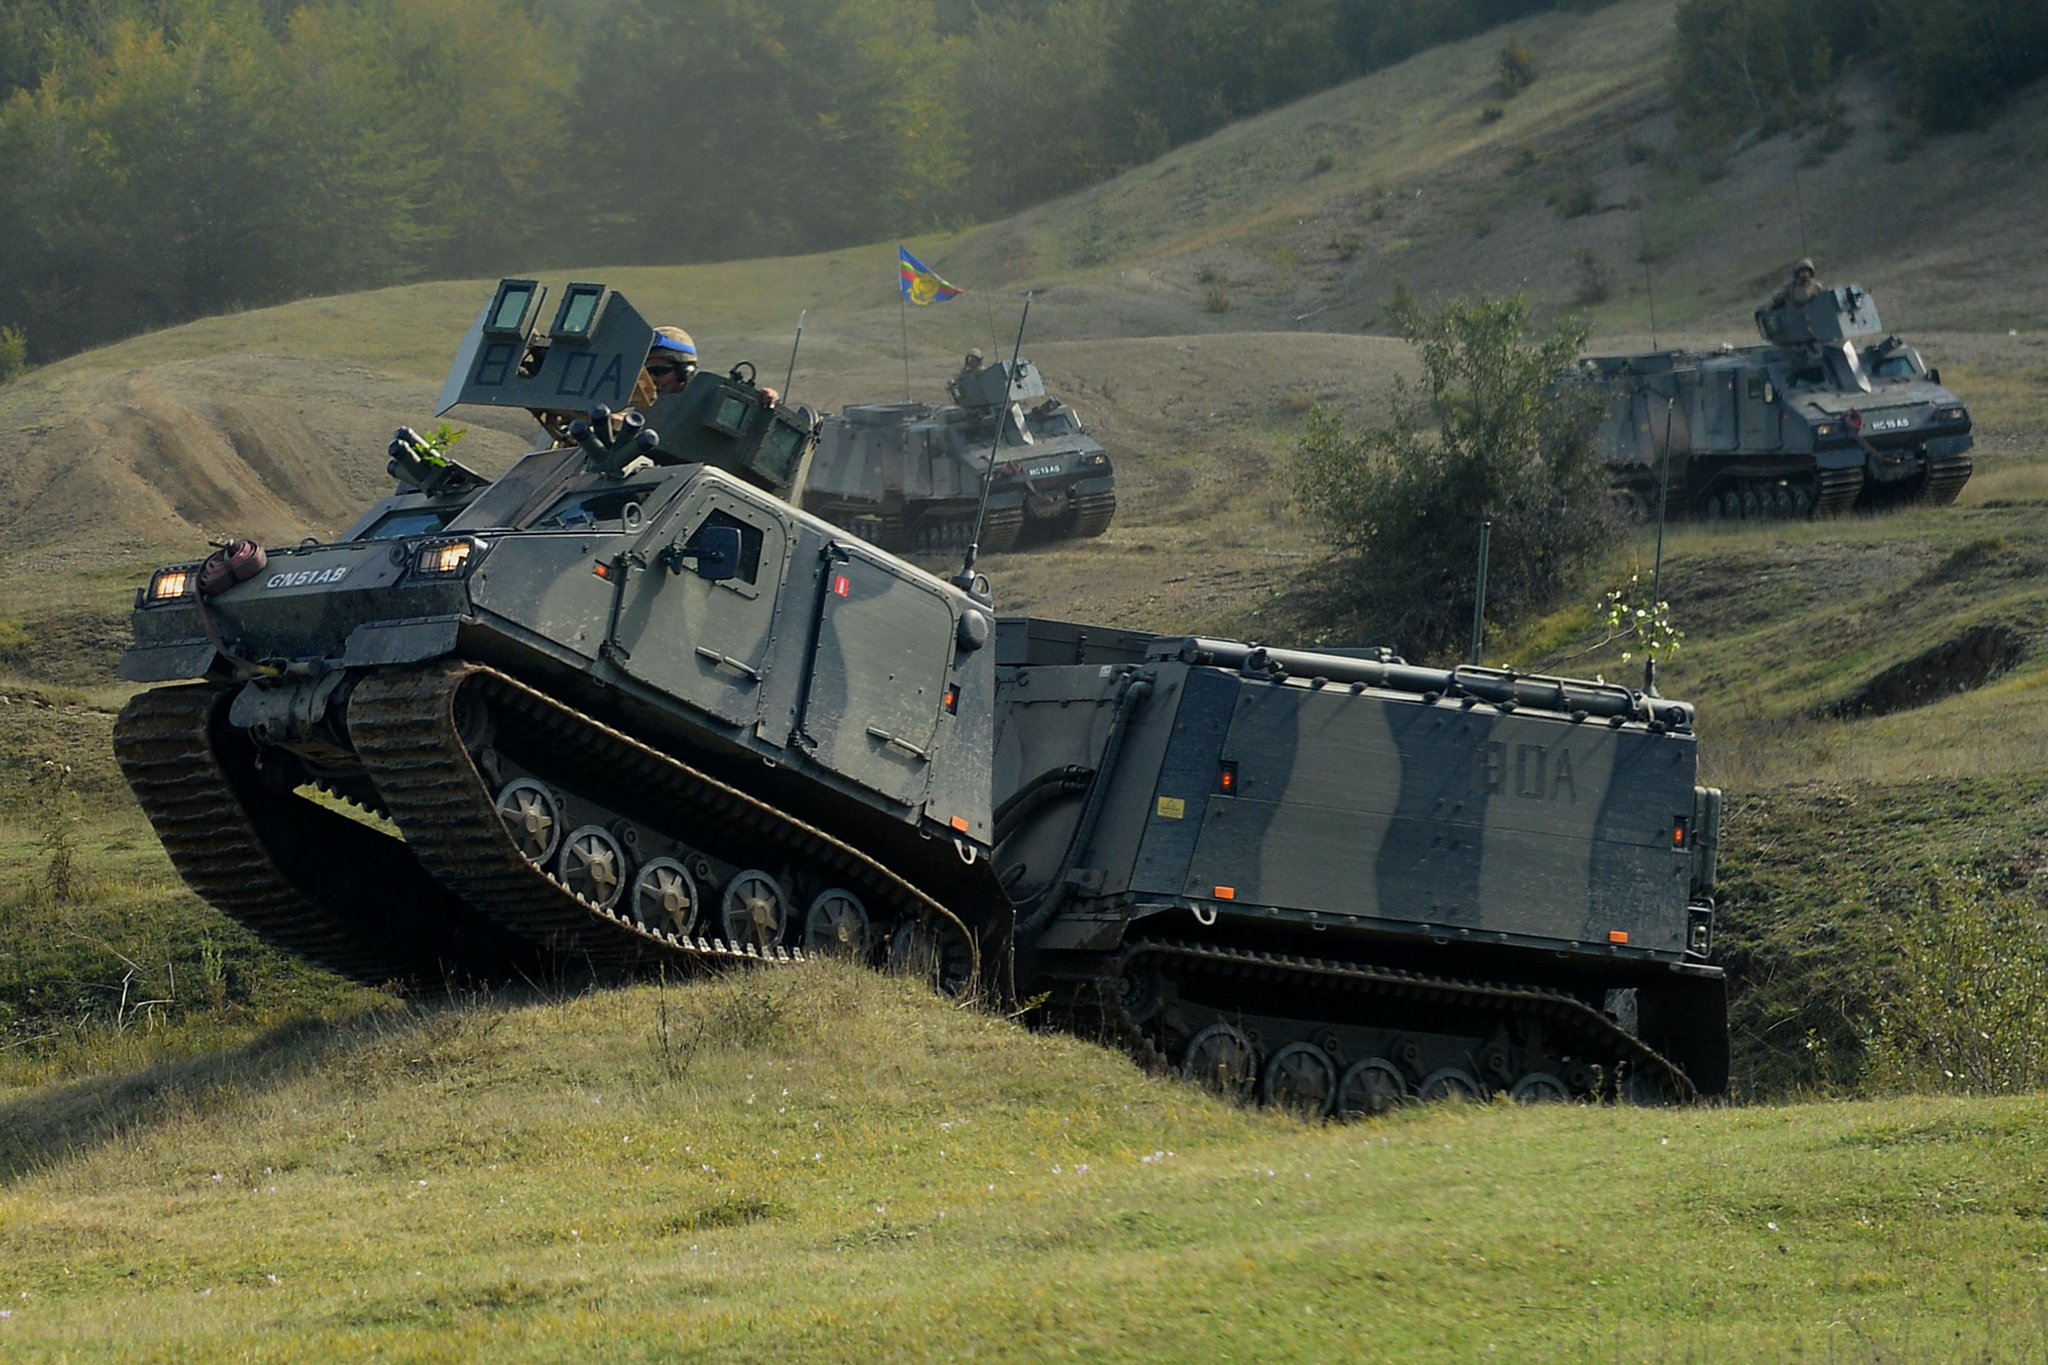 """Nicholas Drummond on Twitter: """"While definitely like the BAE Systems/ Iveco  Amphibious Combat Vehicle, I prefer BAE Systems/ Hagglunds BVS10. The  improvements made to it post Afghanistan have surely made it an"""